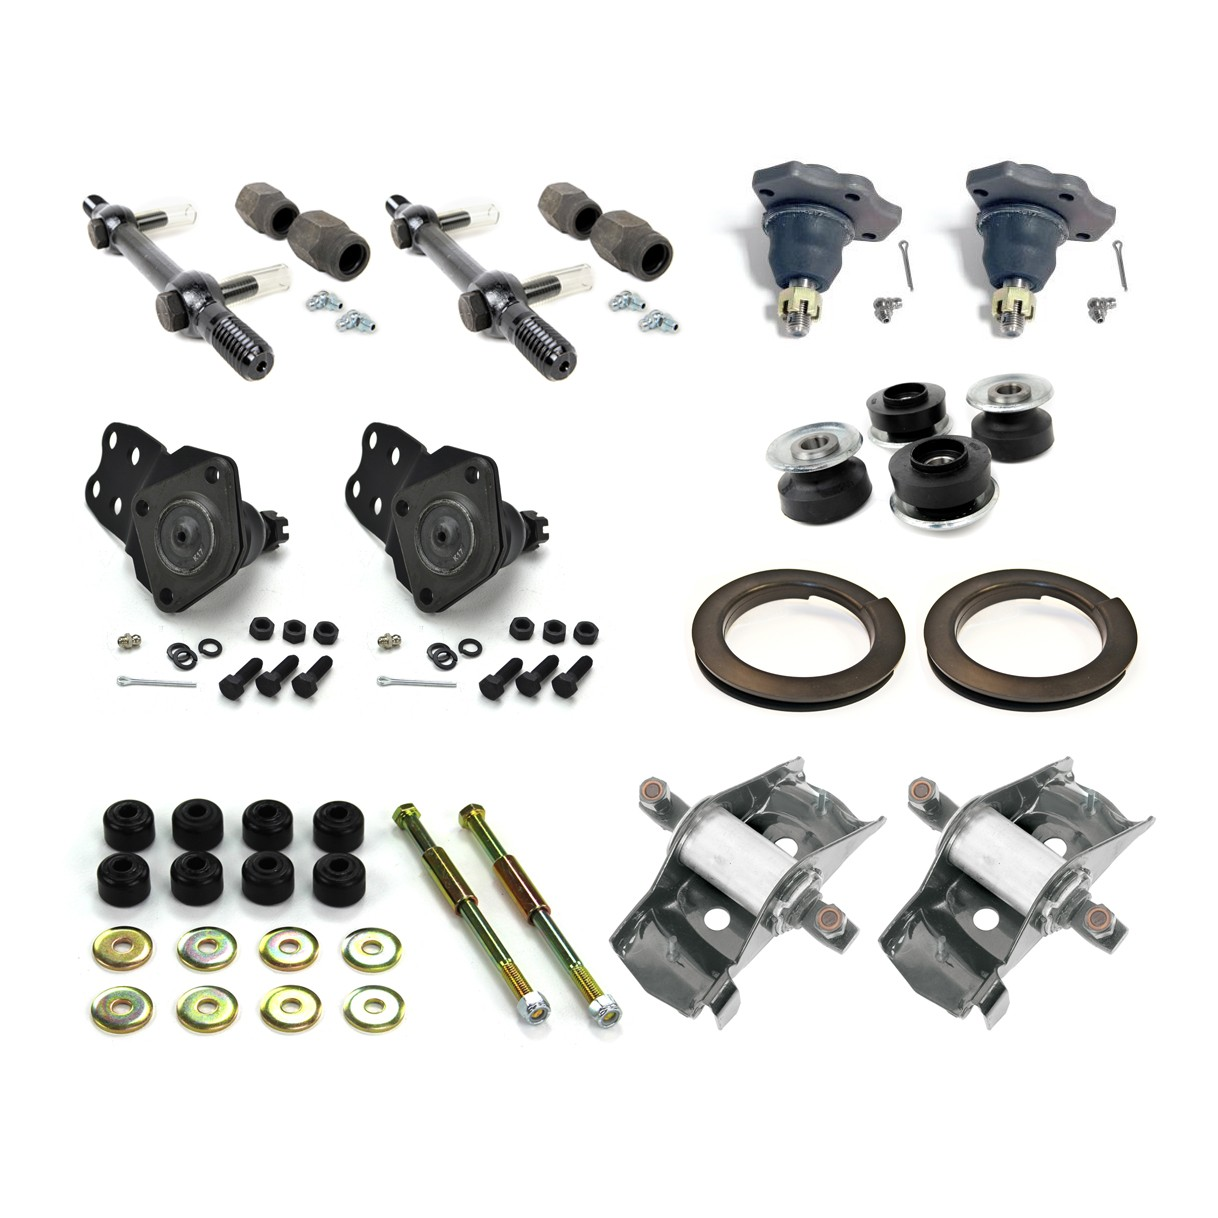 2 Upper Ball Joints Low Price High Quality !